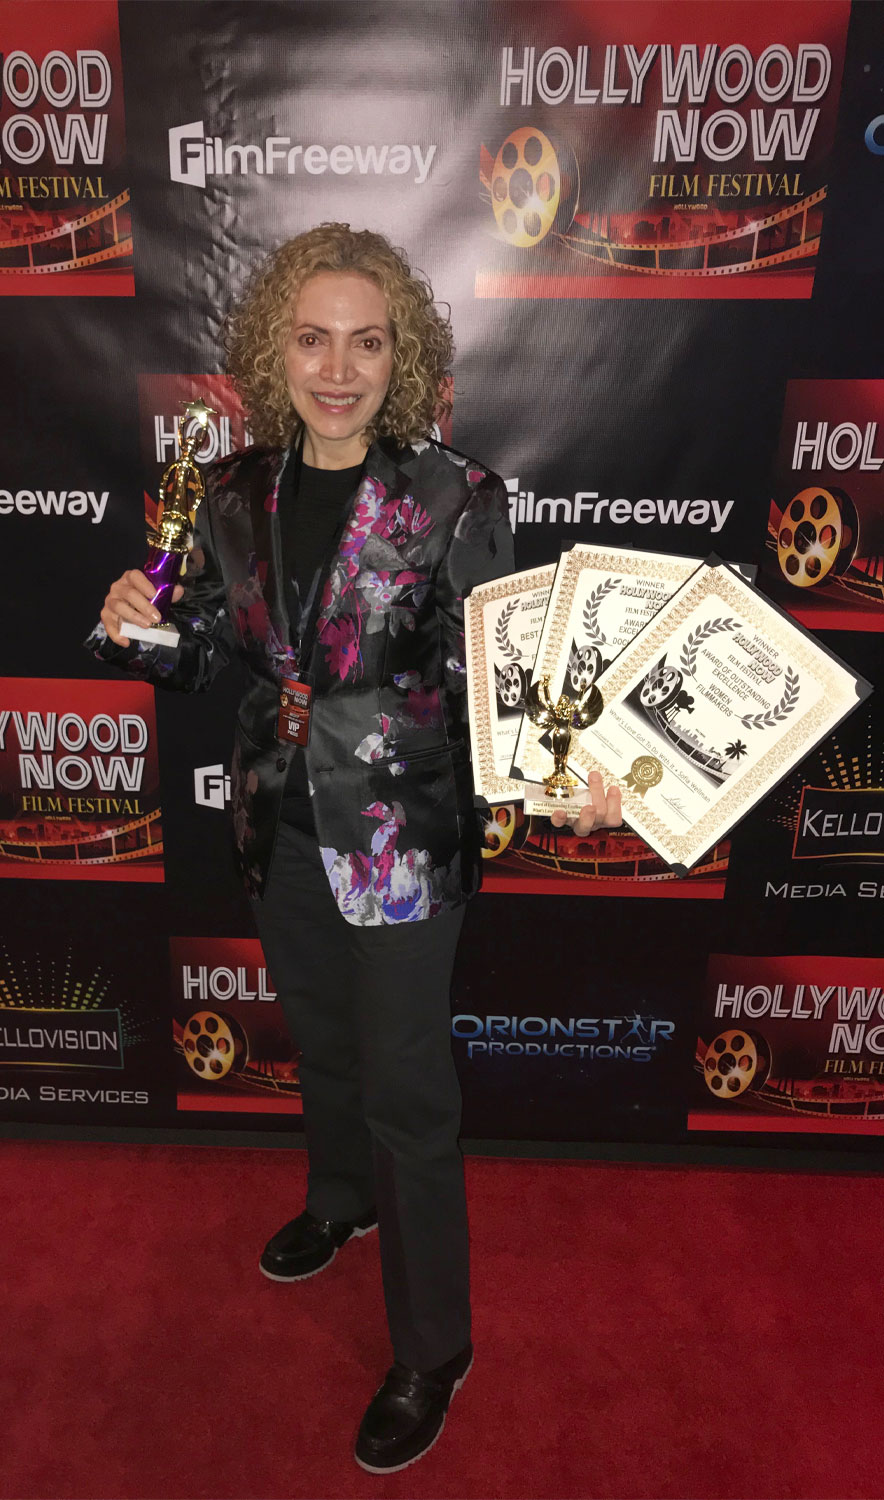 Sofia Wellman - Hollywood Now - Award